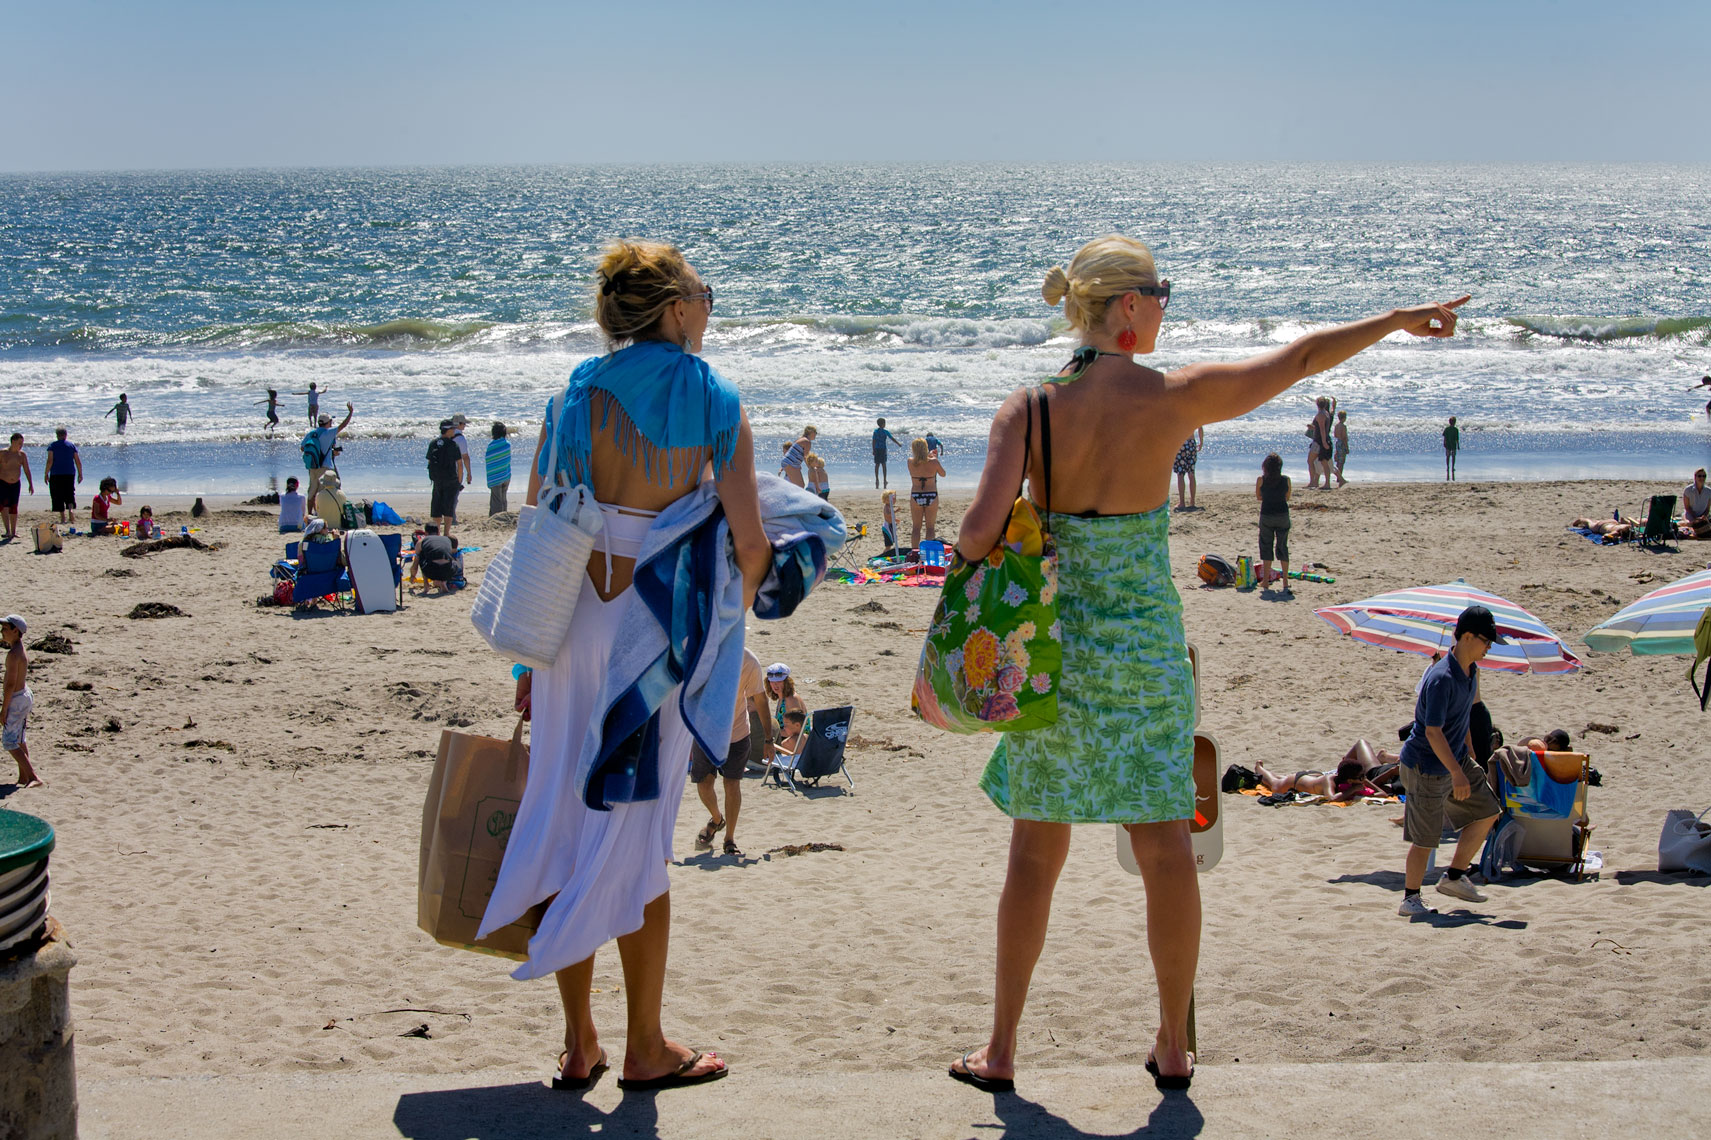 Stinson Beach women, California, summer, ocean